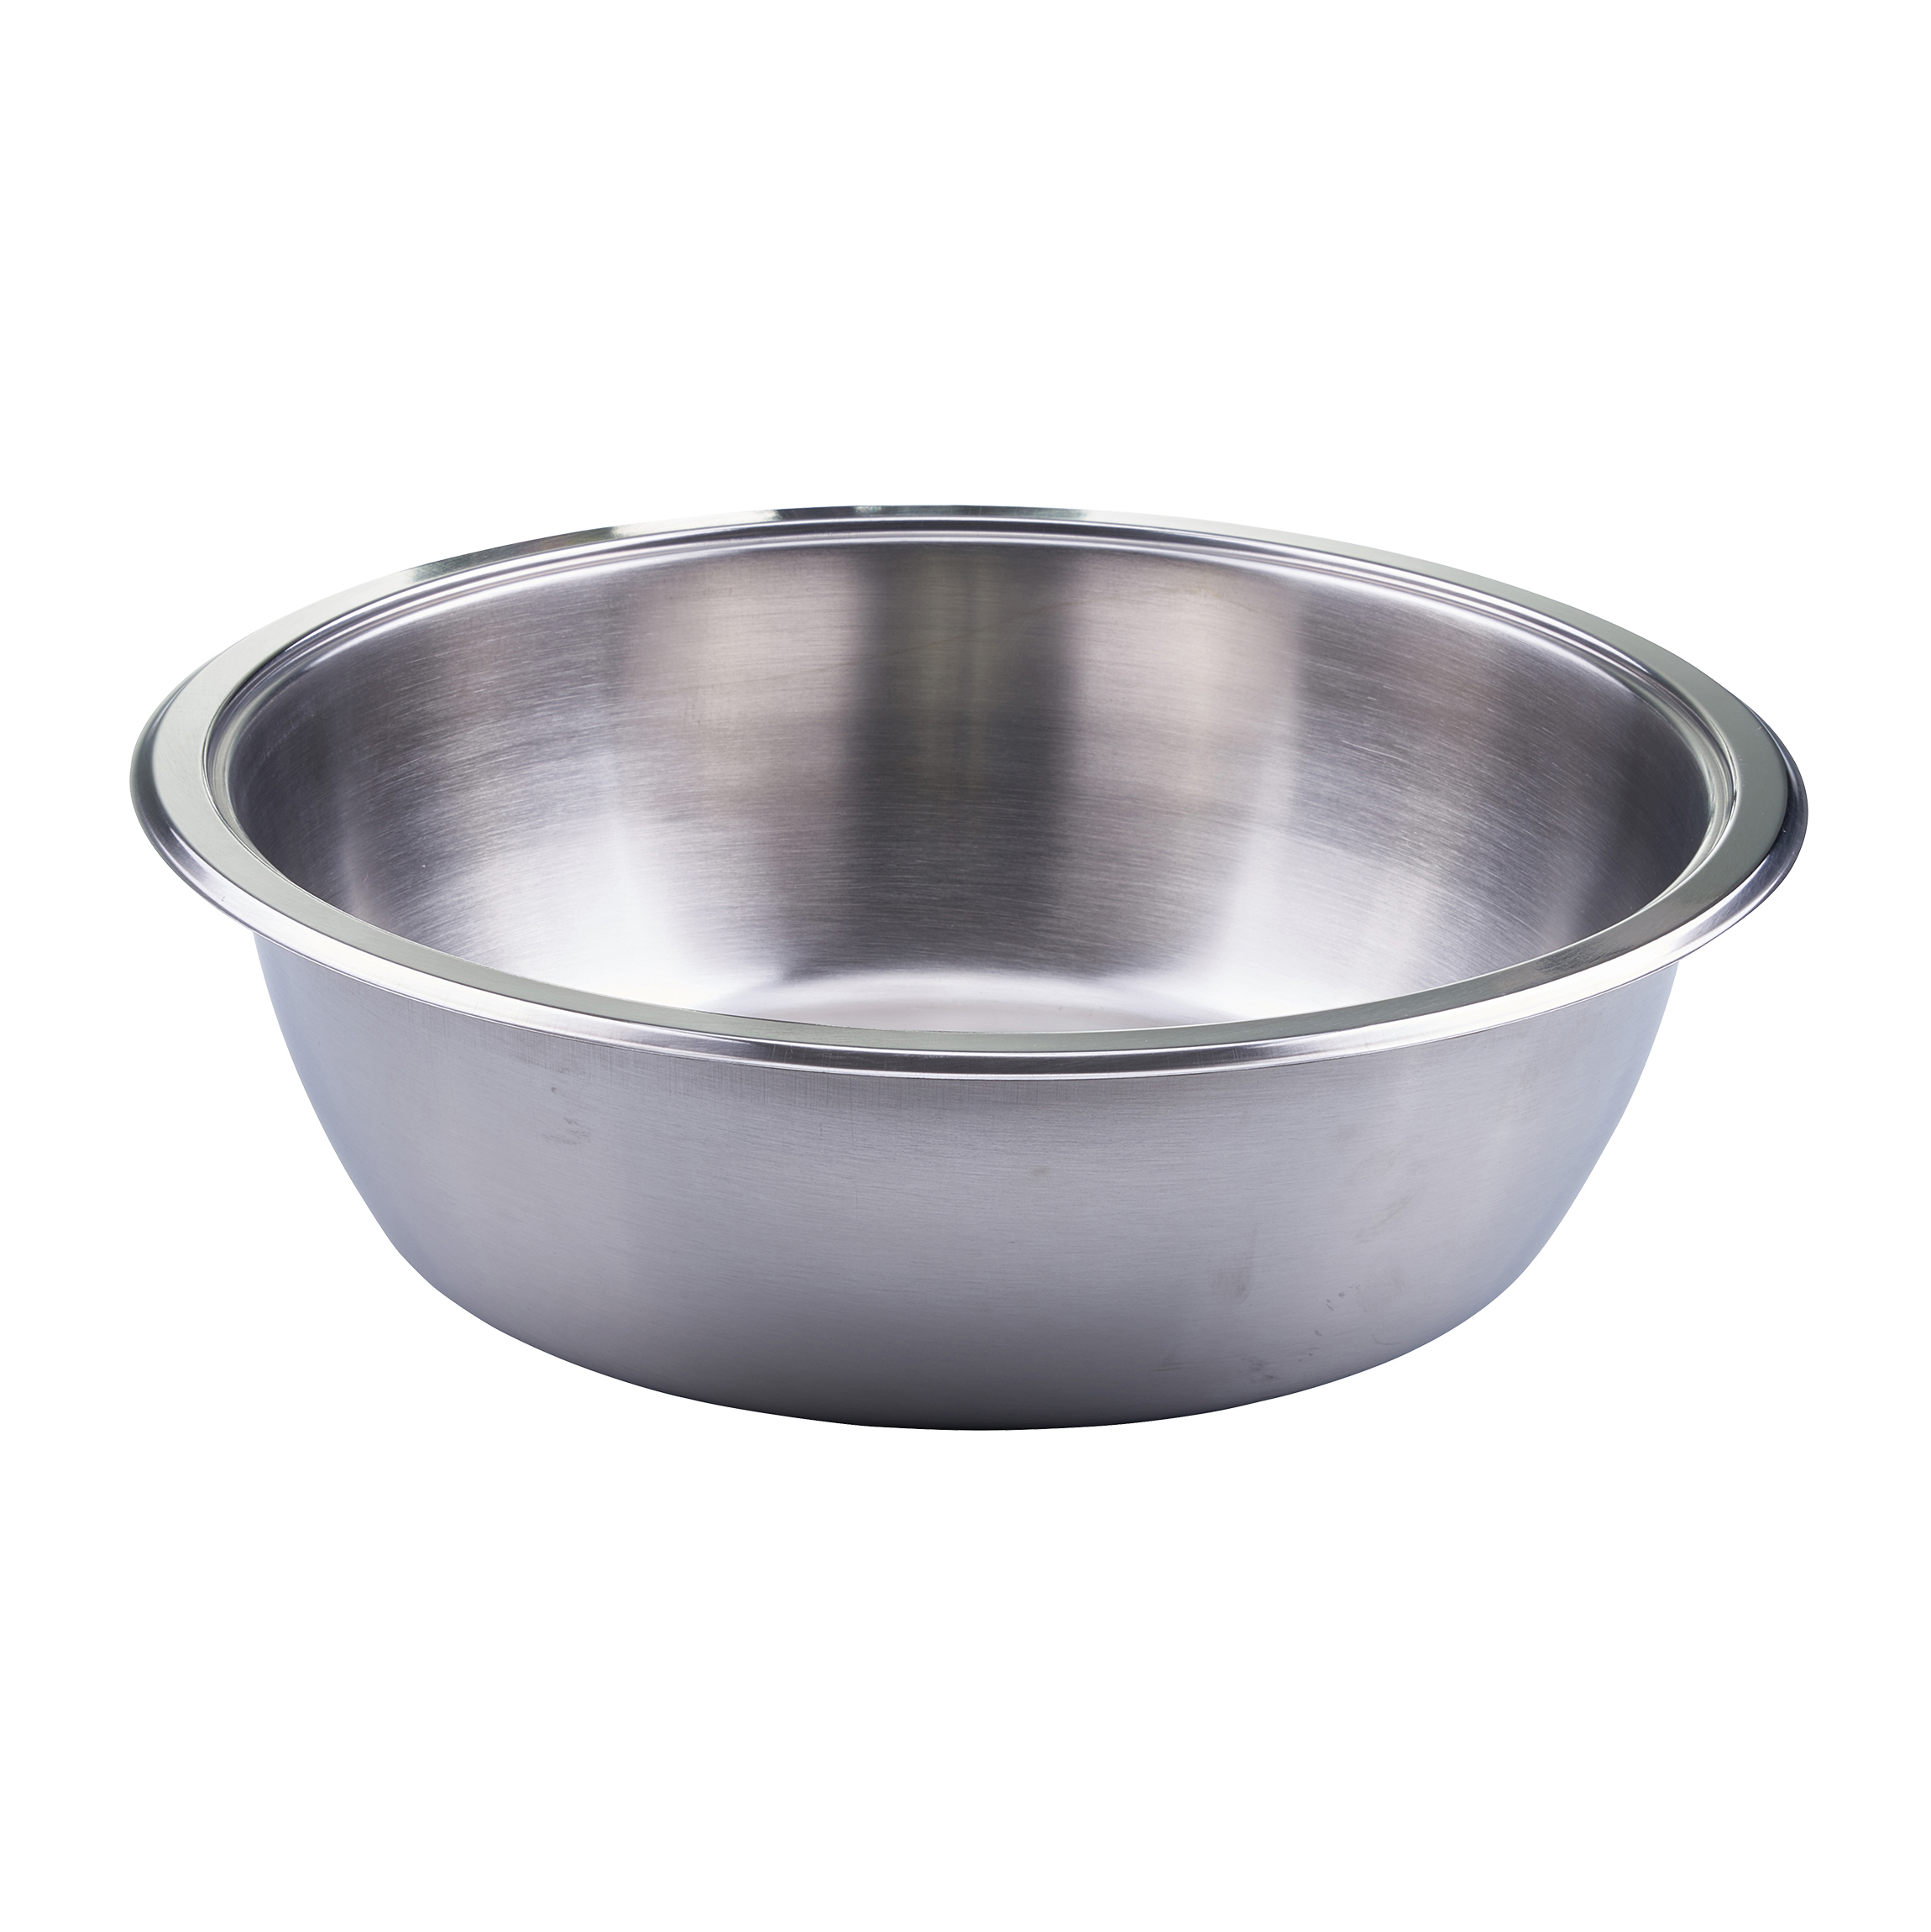 Winco 708-FP chafing dish pan